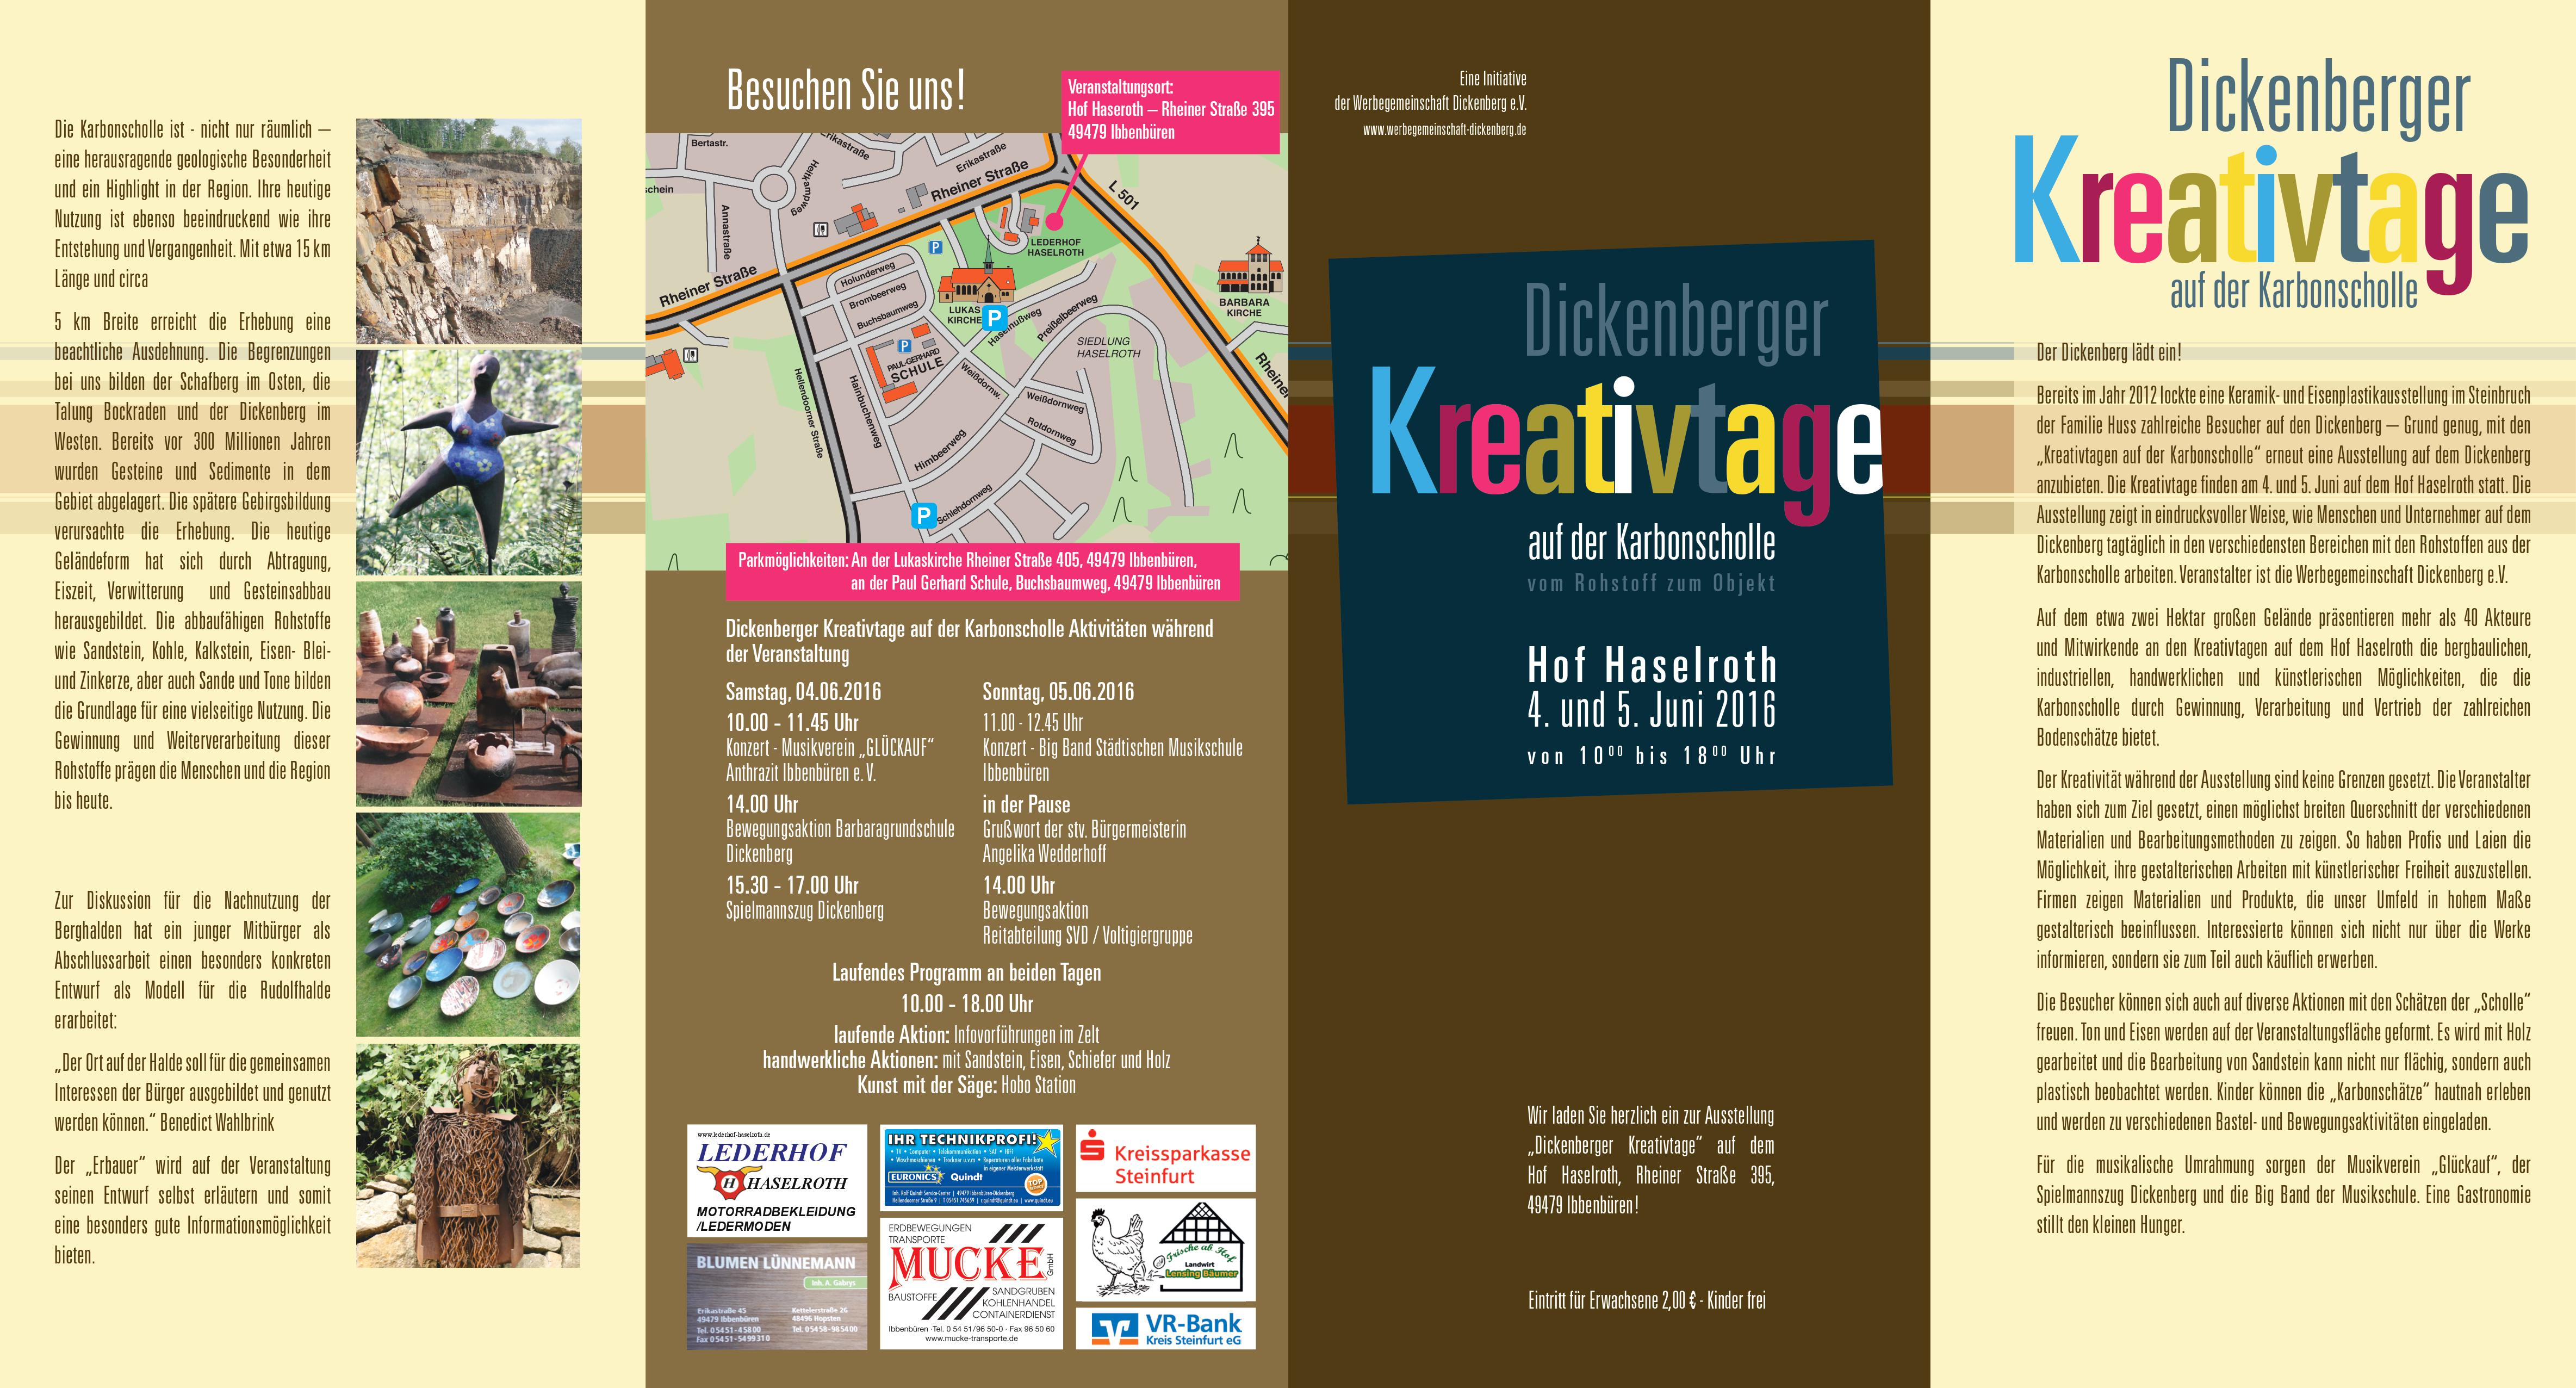 Dickenberger_Kreativtage_(2016-06)_Flyer_0001